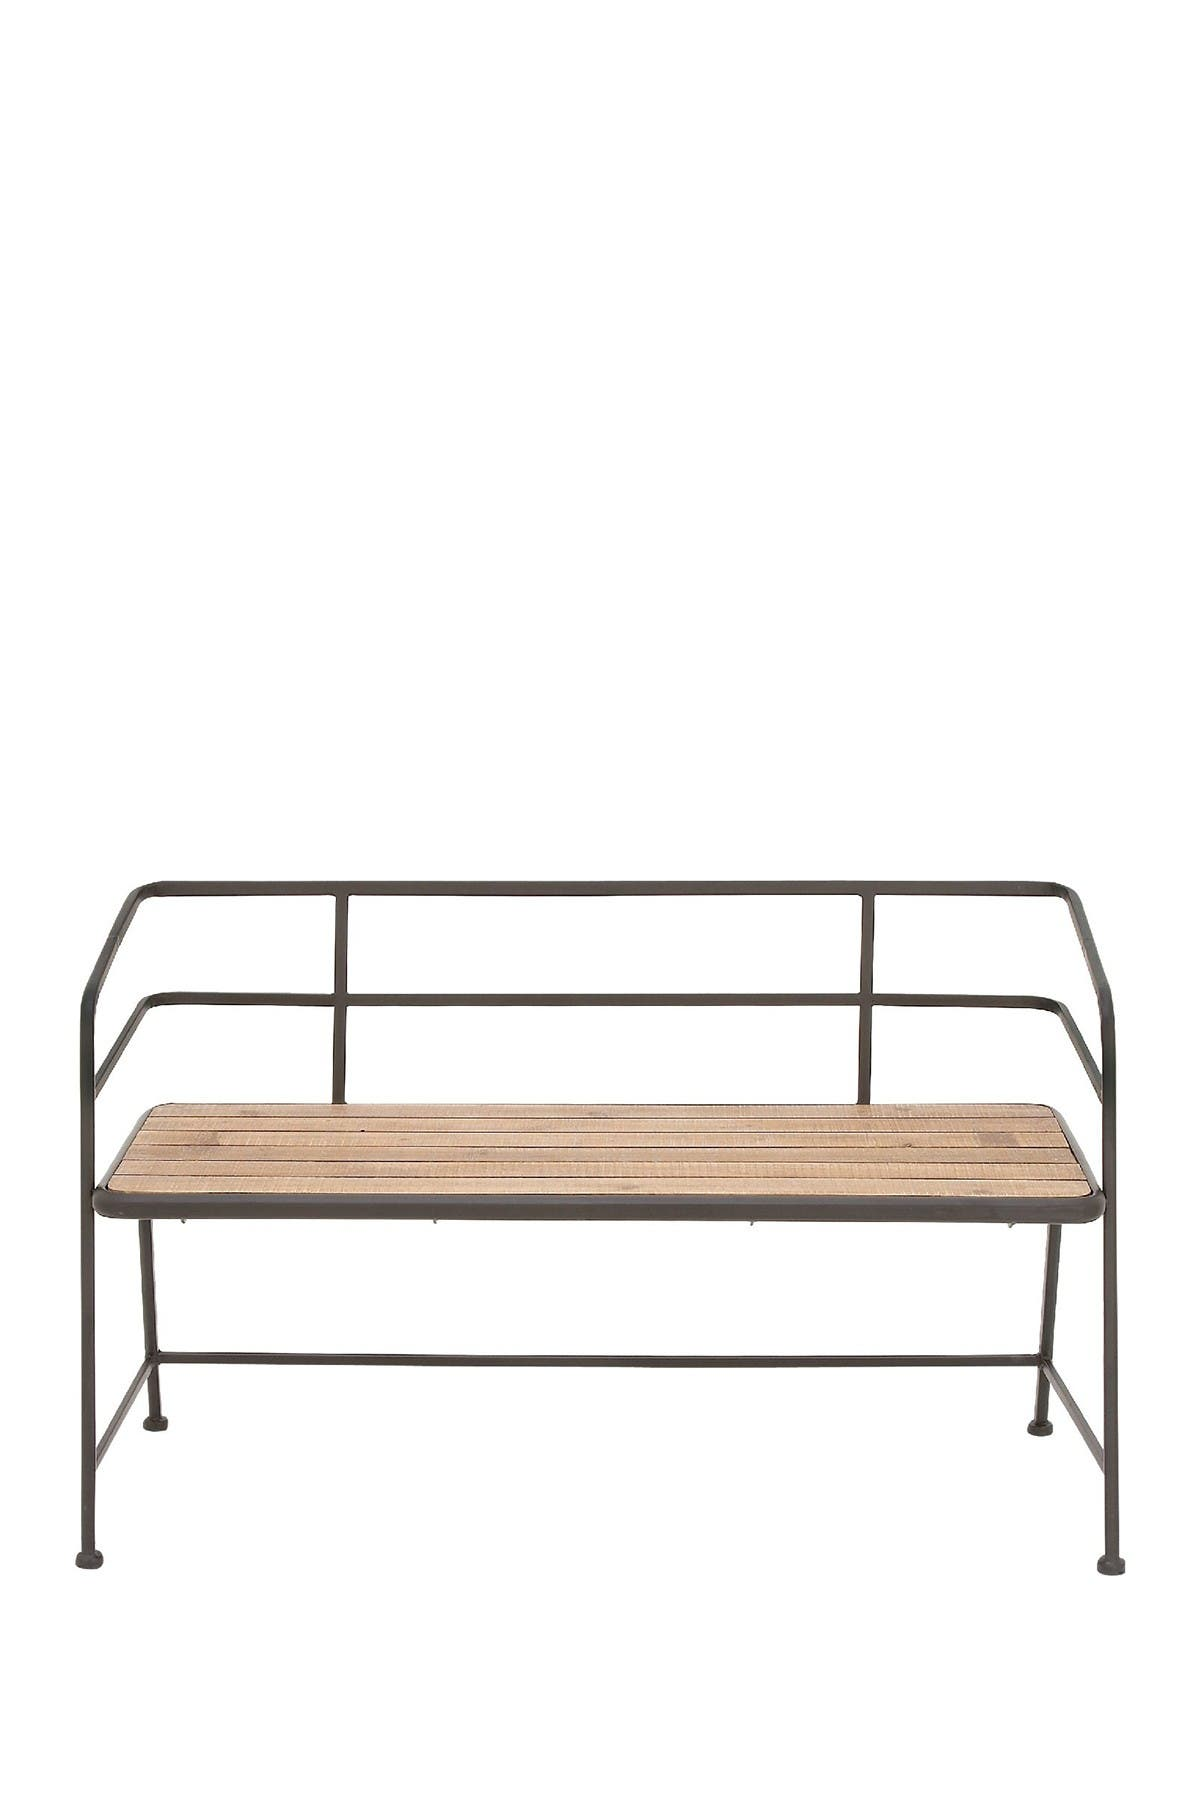 Image of Willow Row Black/Brown Industrial Cozy Bench